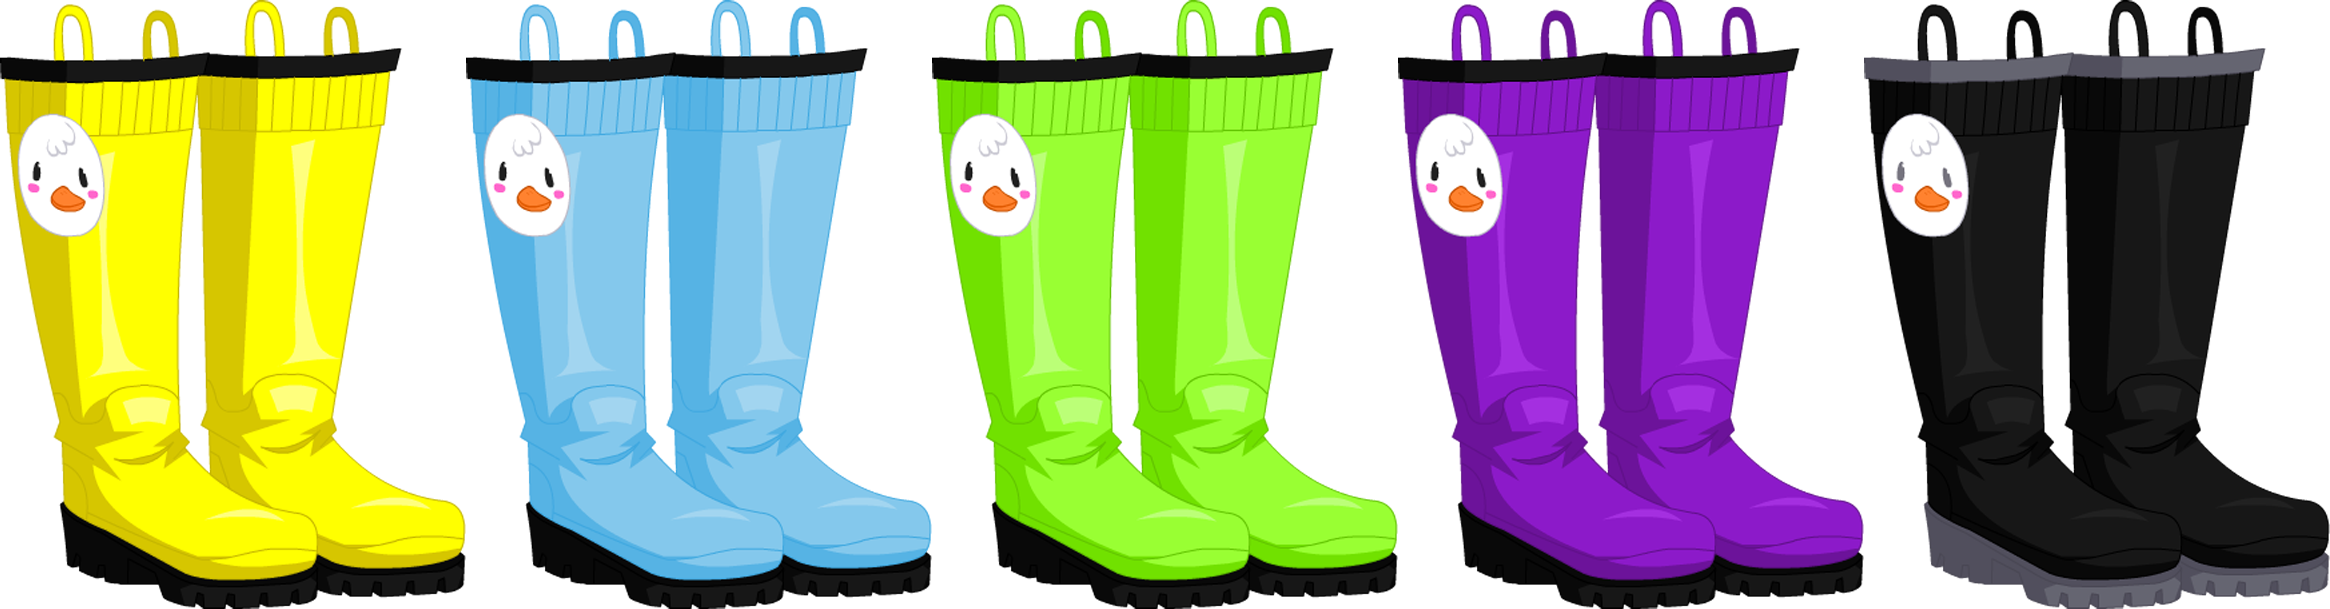 Apr. 2016 Rainy Day Duckling Boots